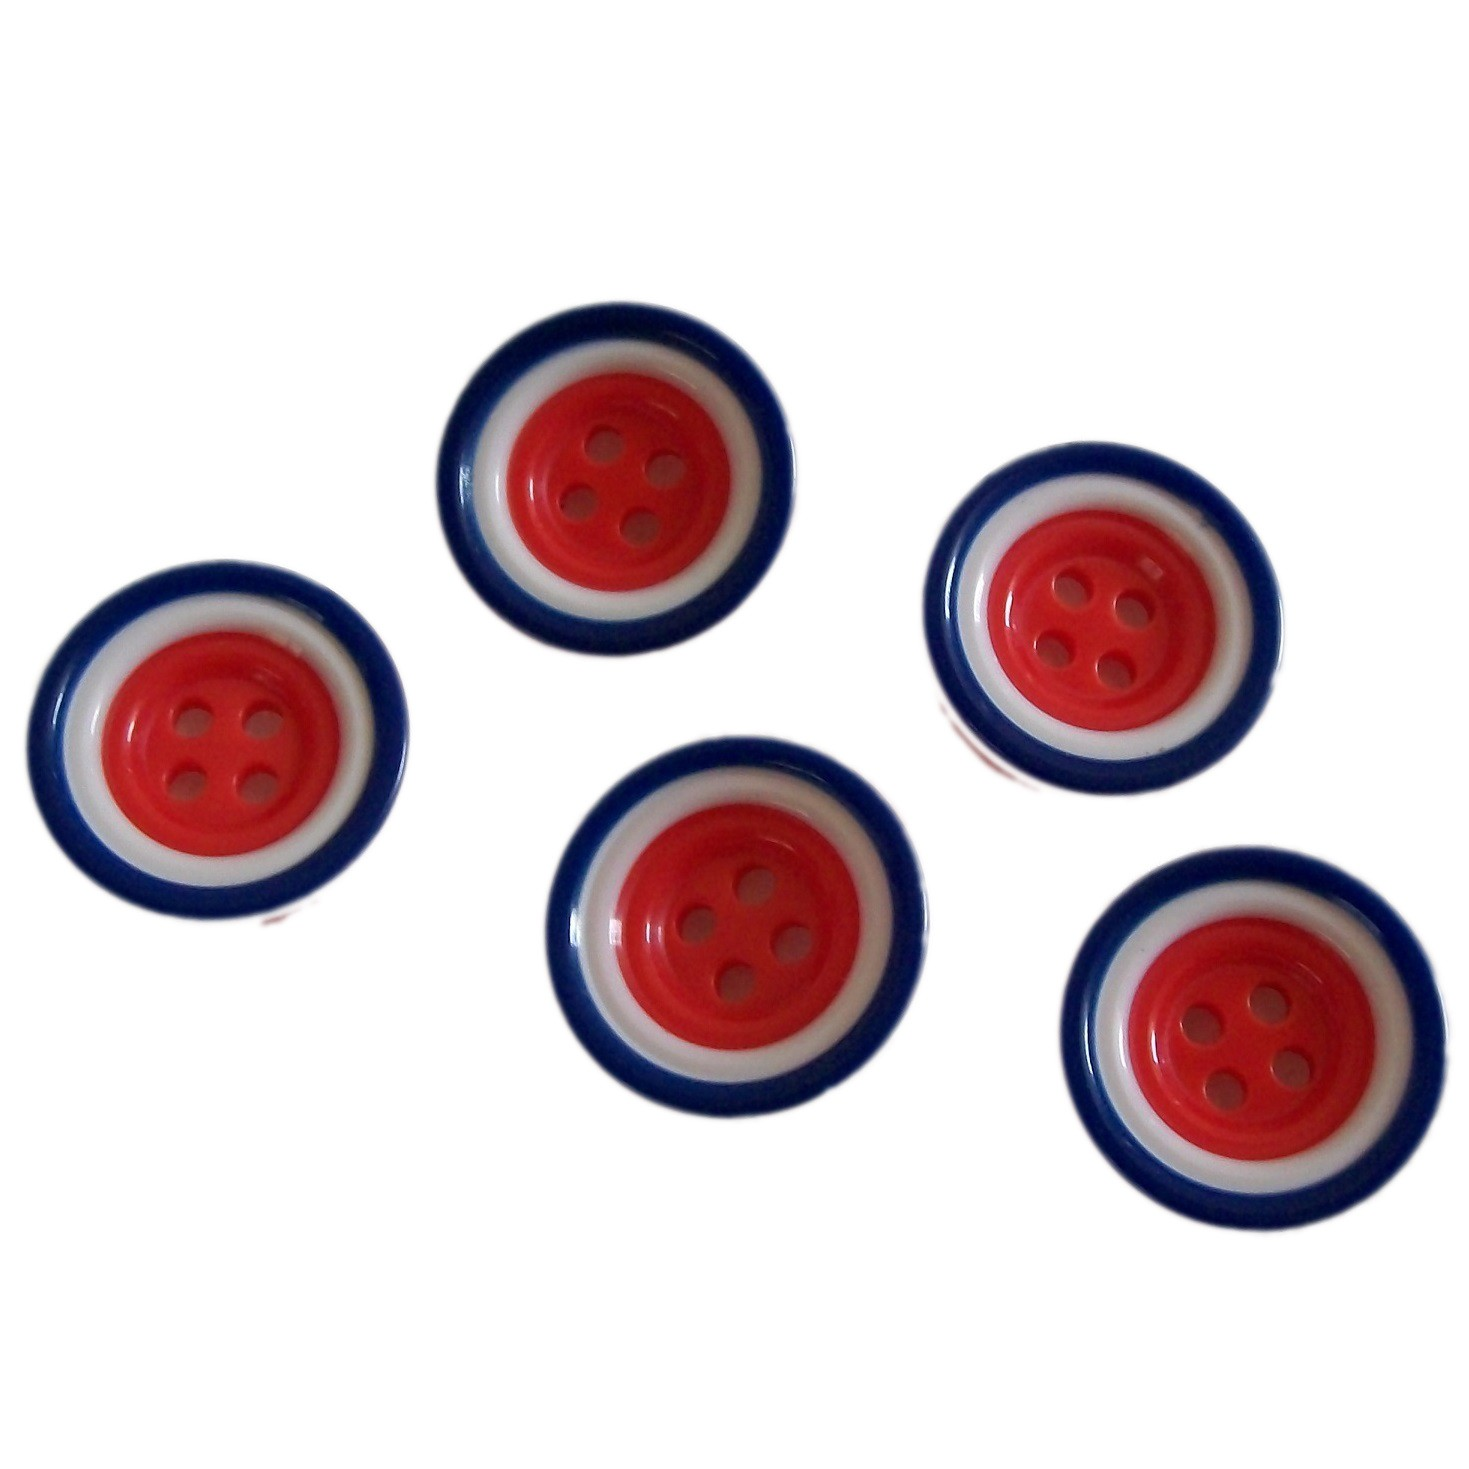 Mod Target Style Round Plastic Buttons 33mm Pack of 5